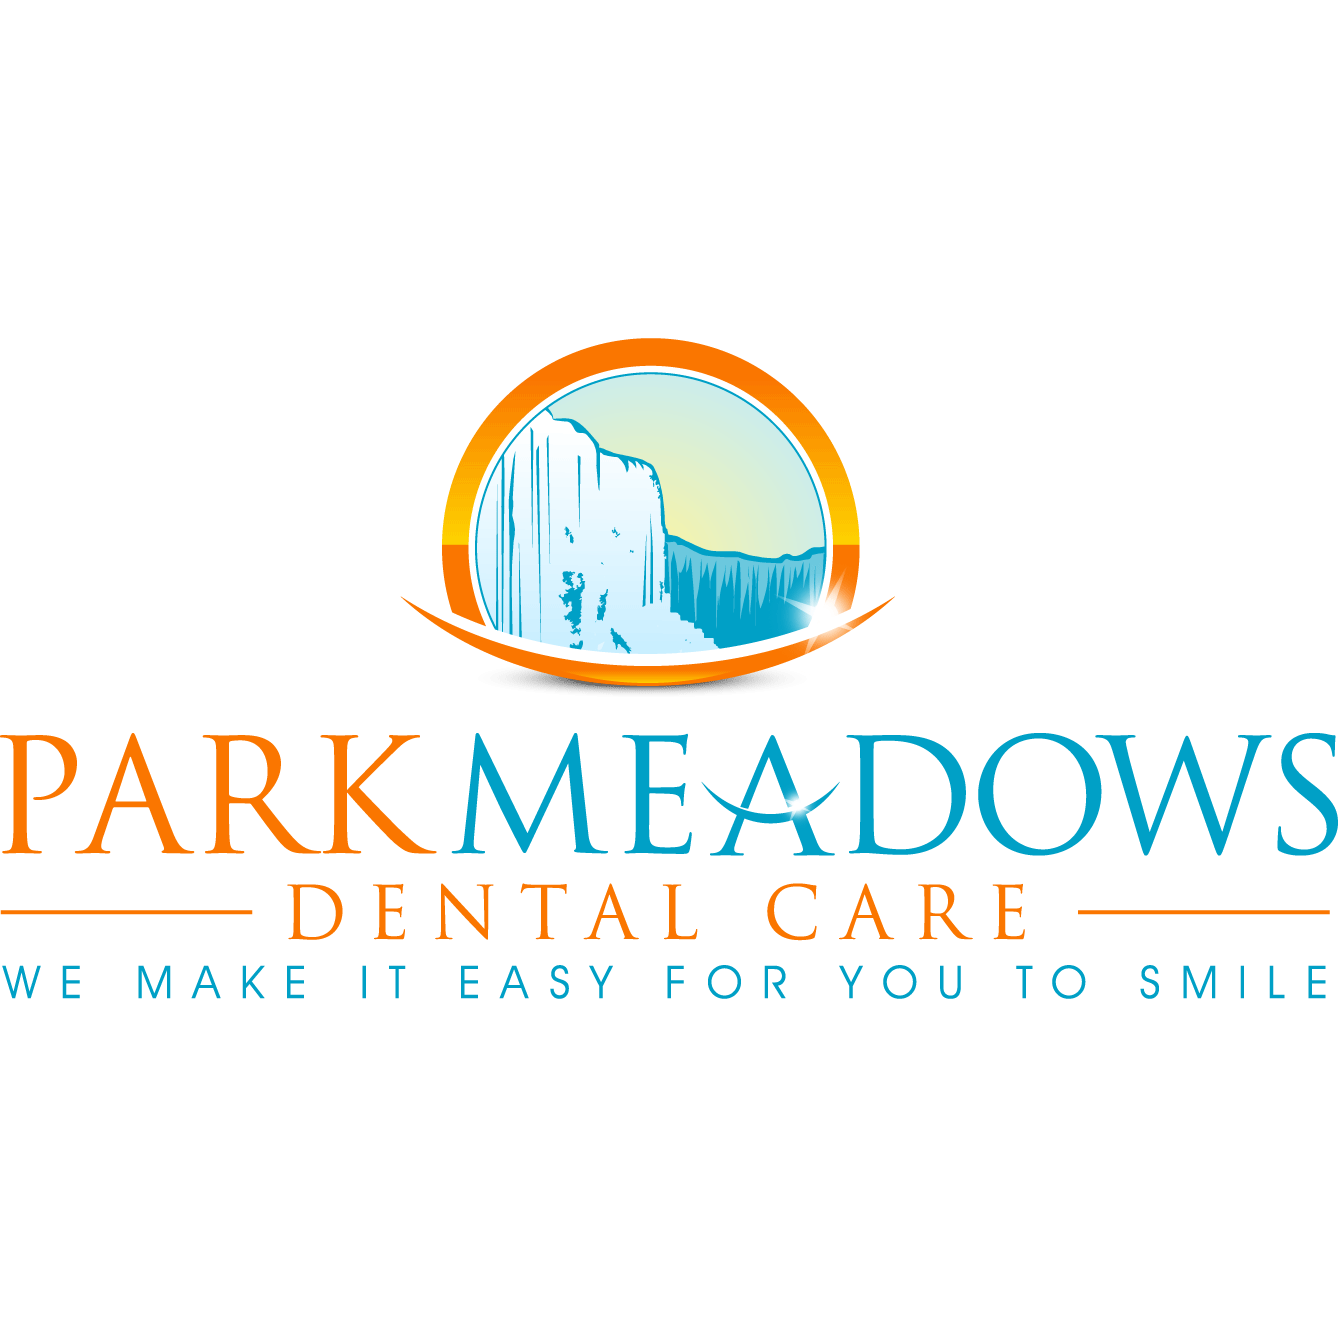 Park Meadows Dental Care